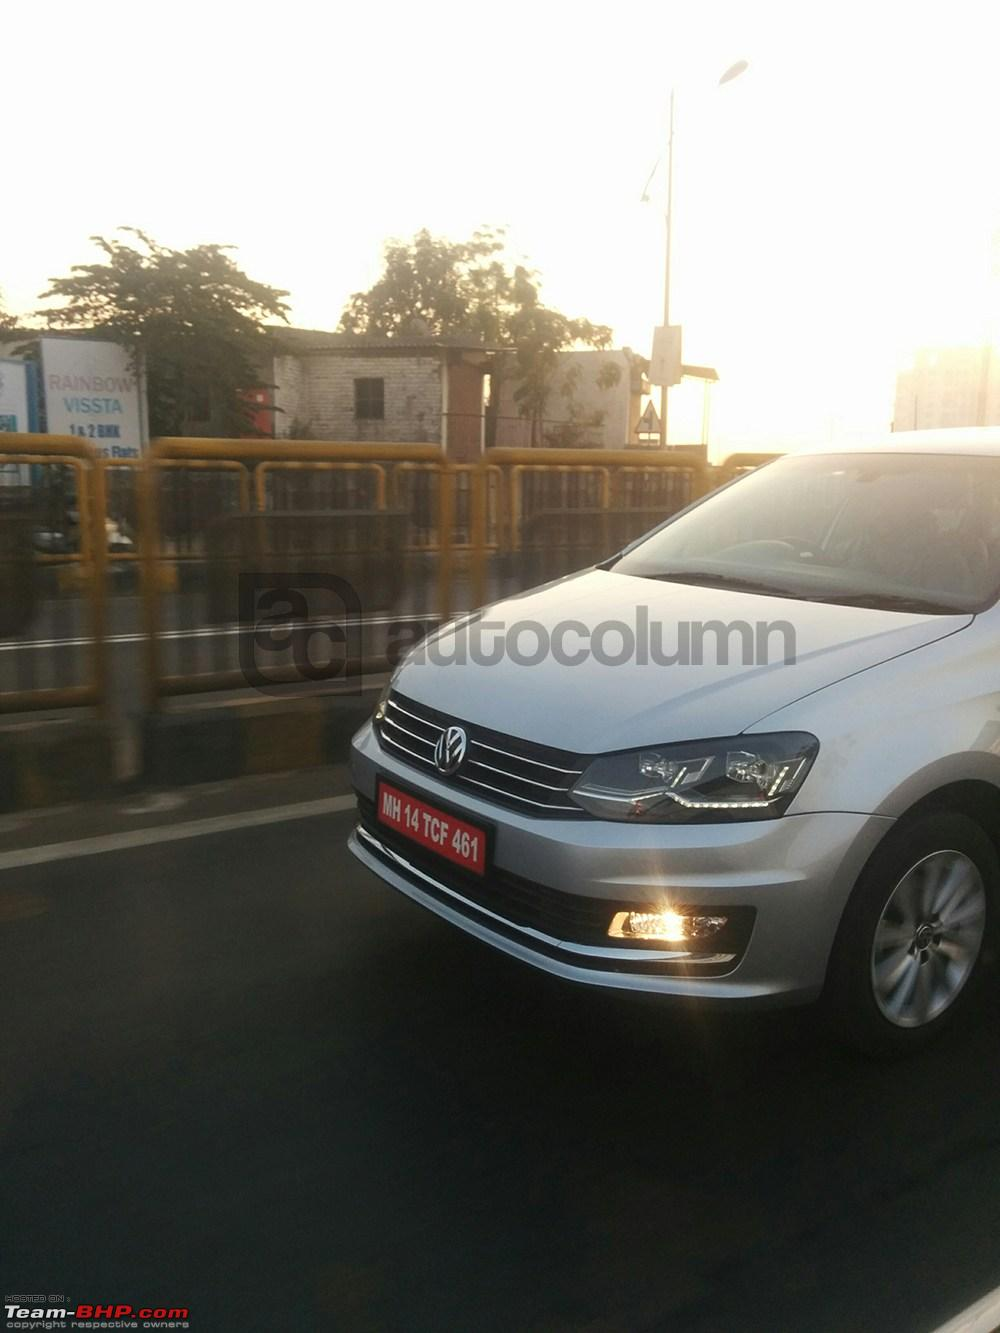 new car launches team bhp2016 Volkswagen Vento Facelift spotted testing EDIT Launched